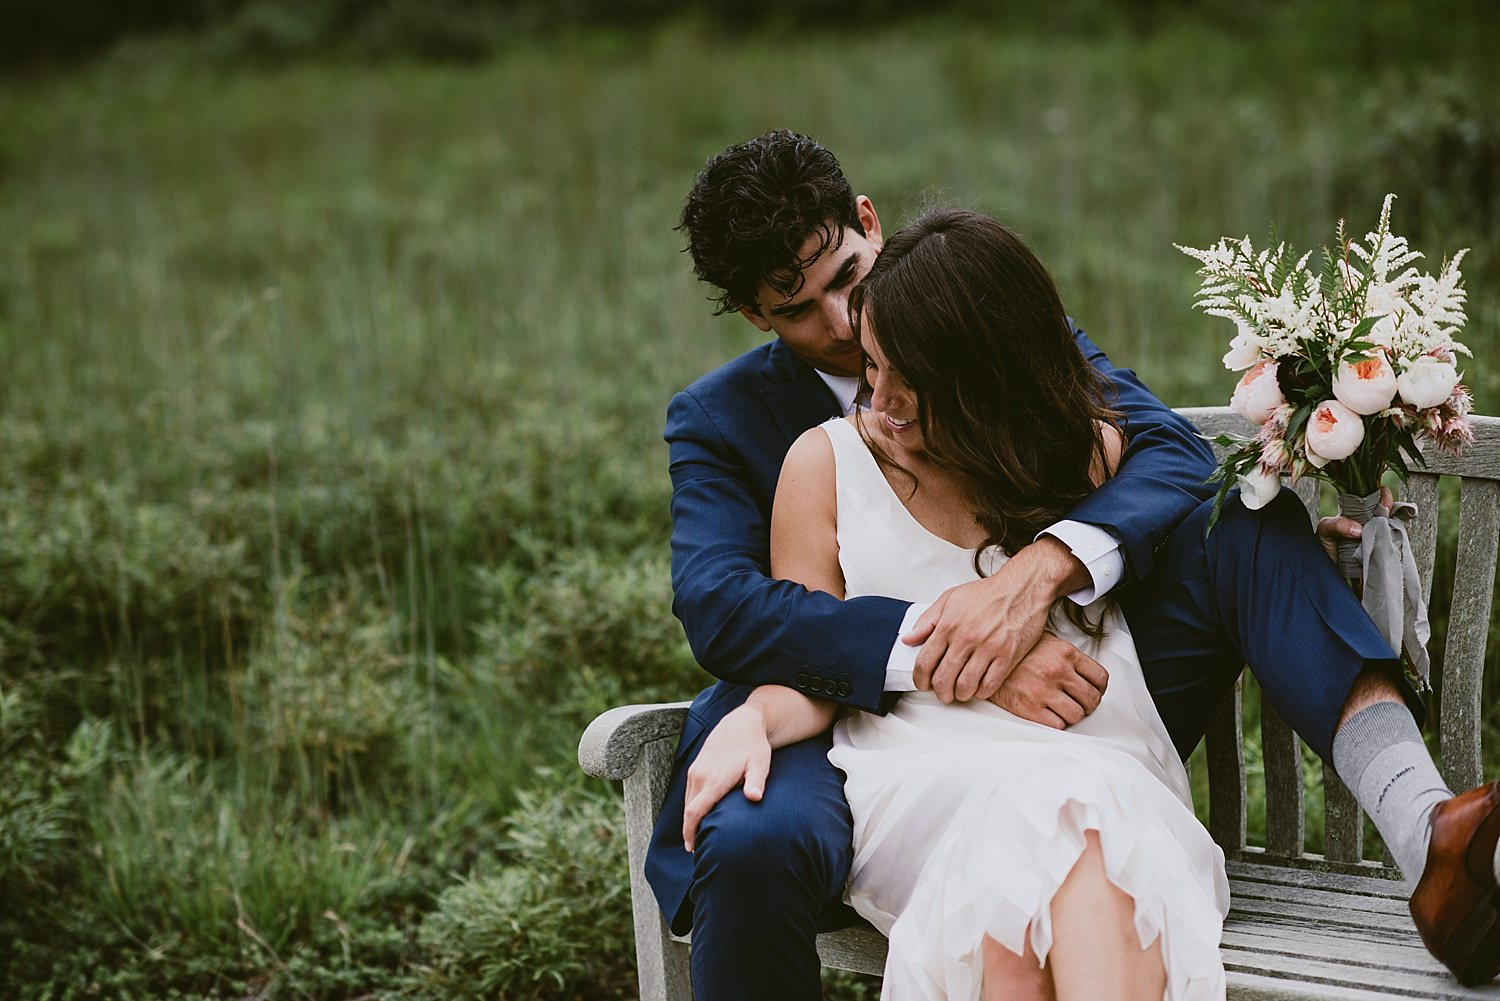 groom embracing bride on bench